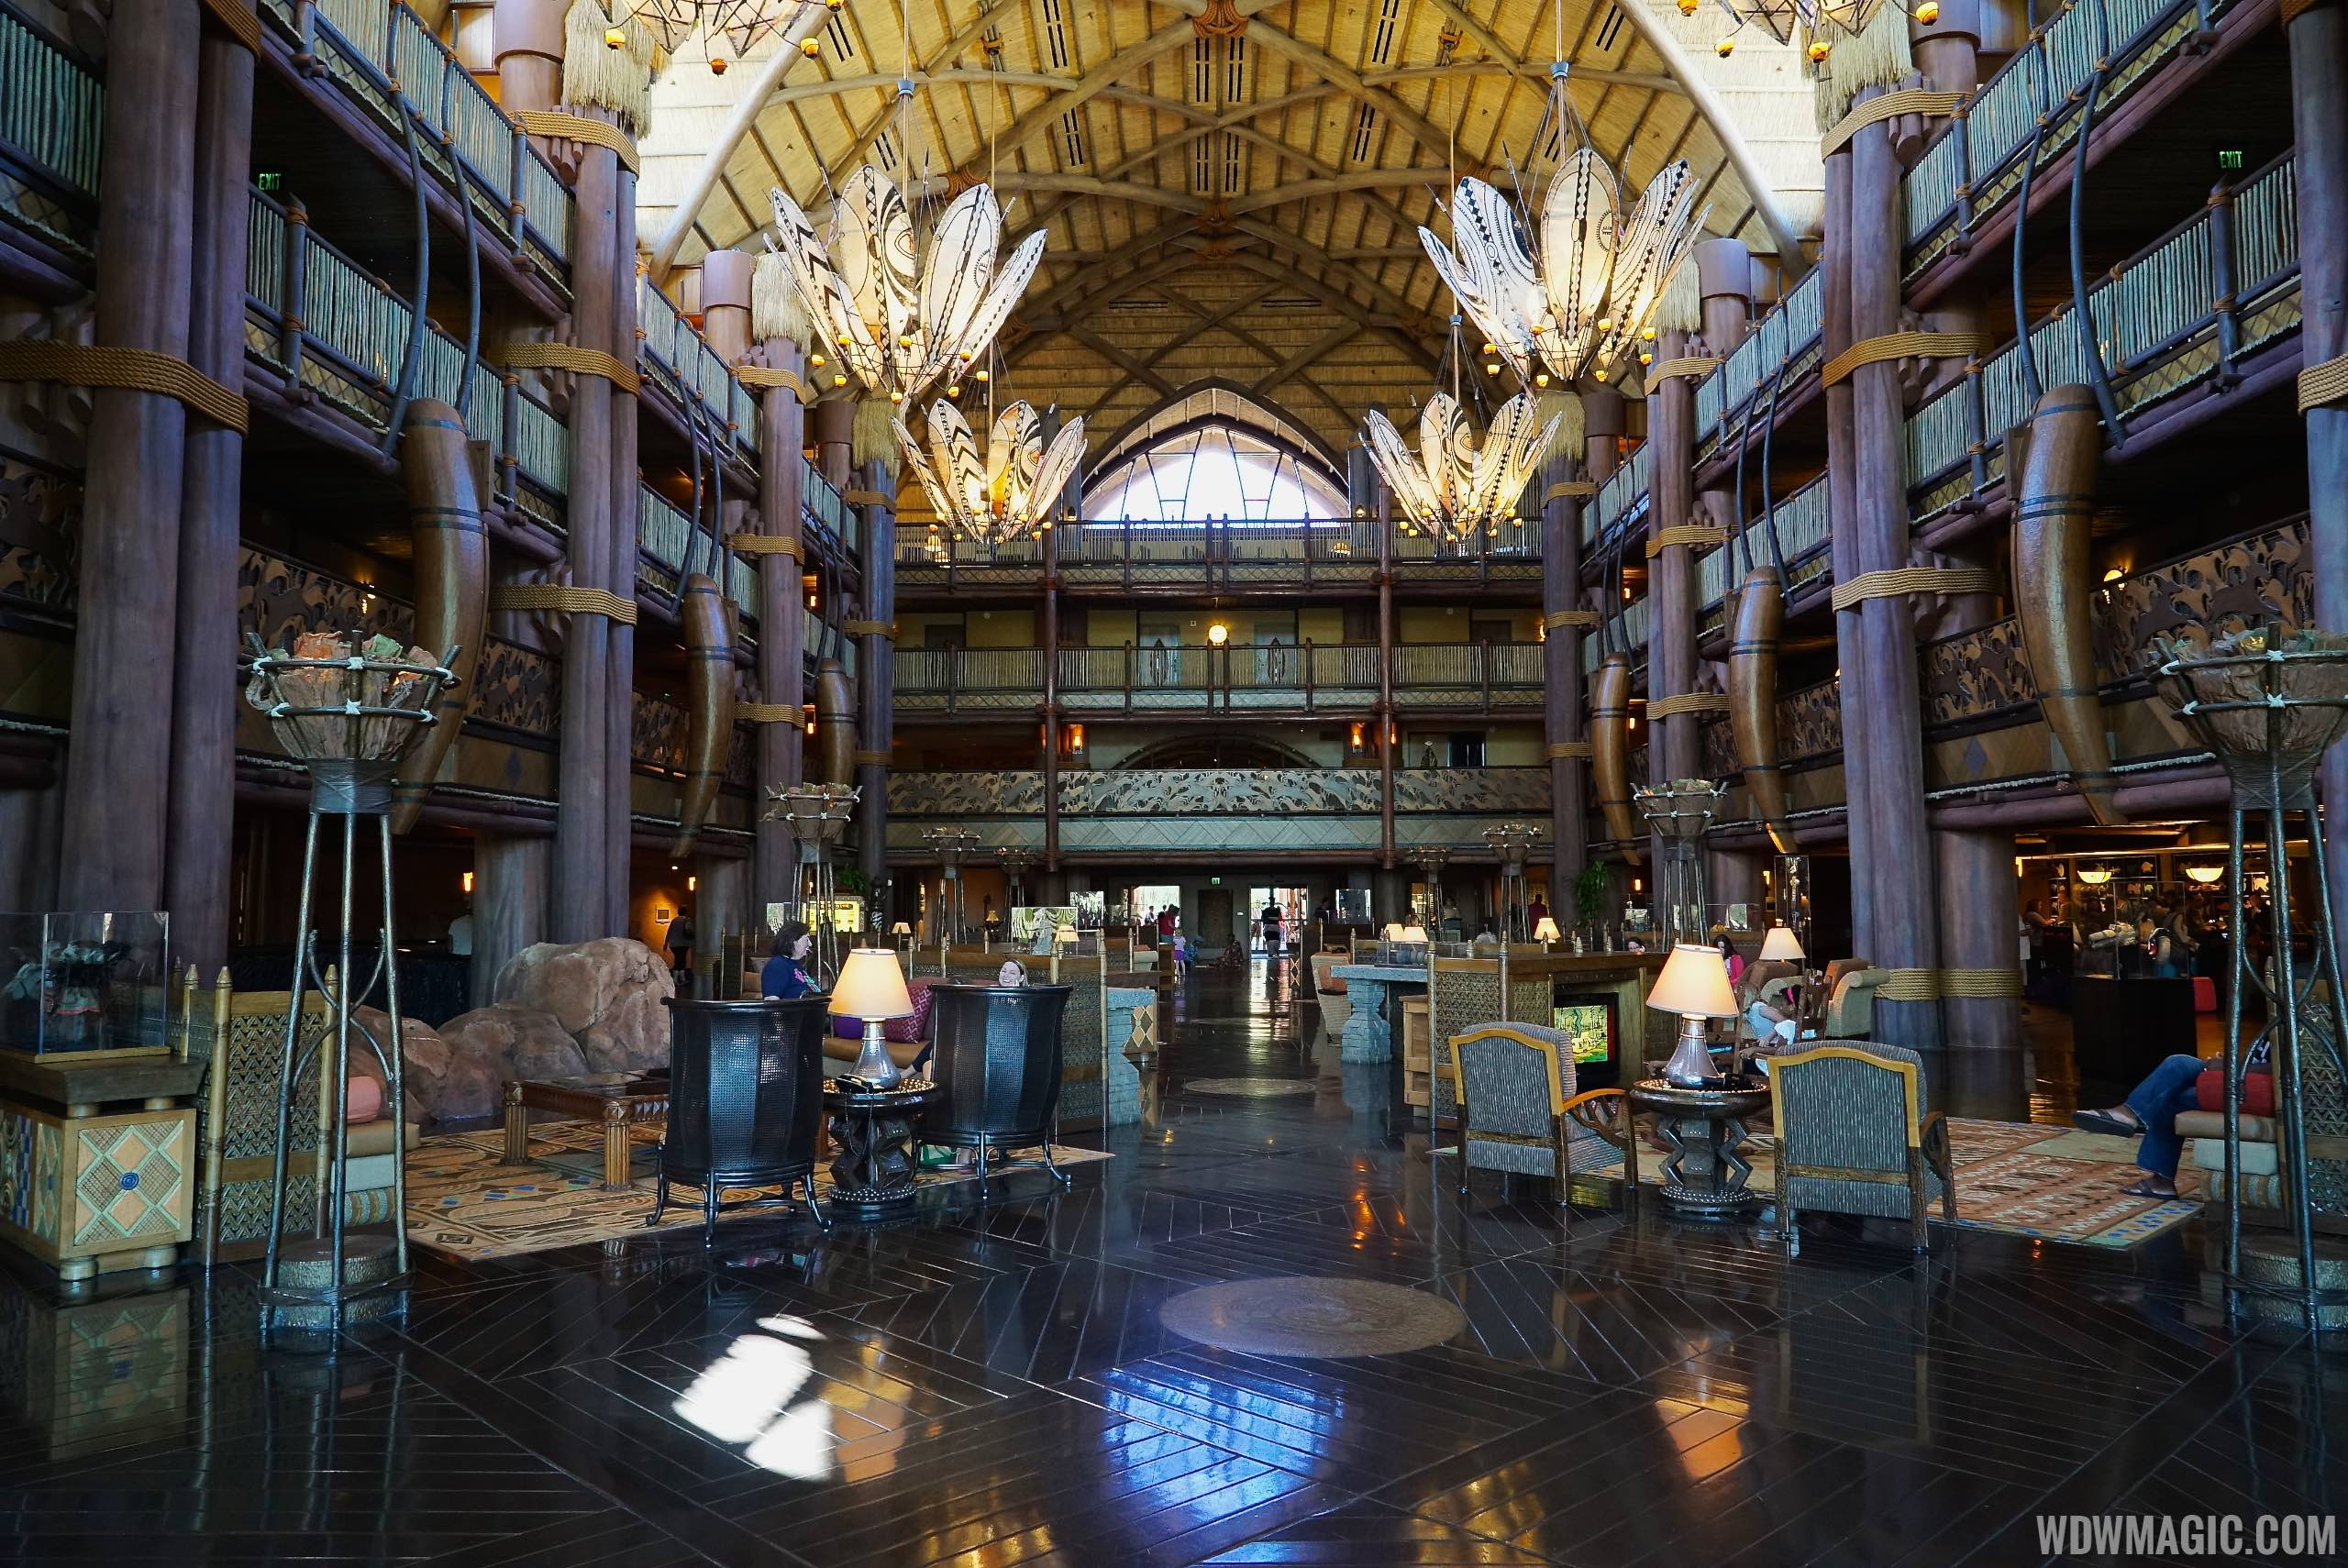 The main lobby at Disney's Animal Kingdom Lodge